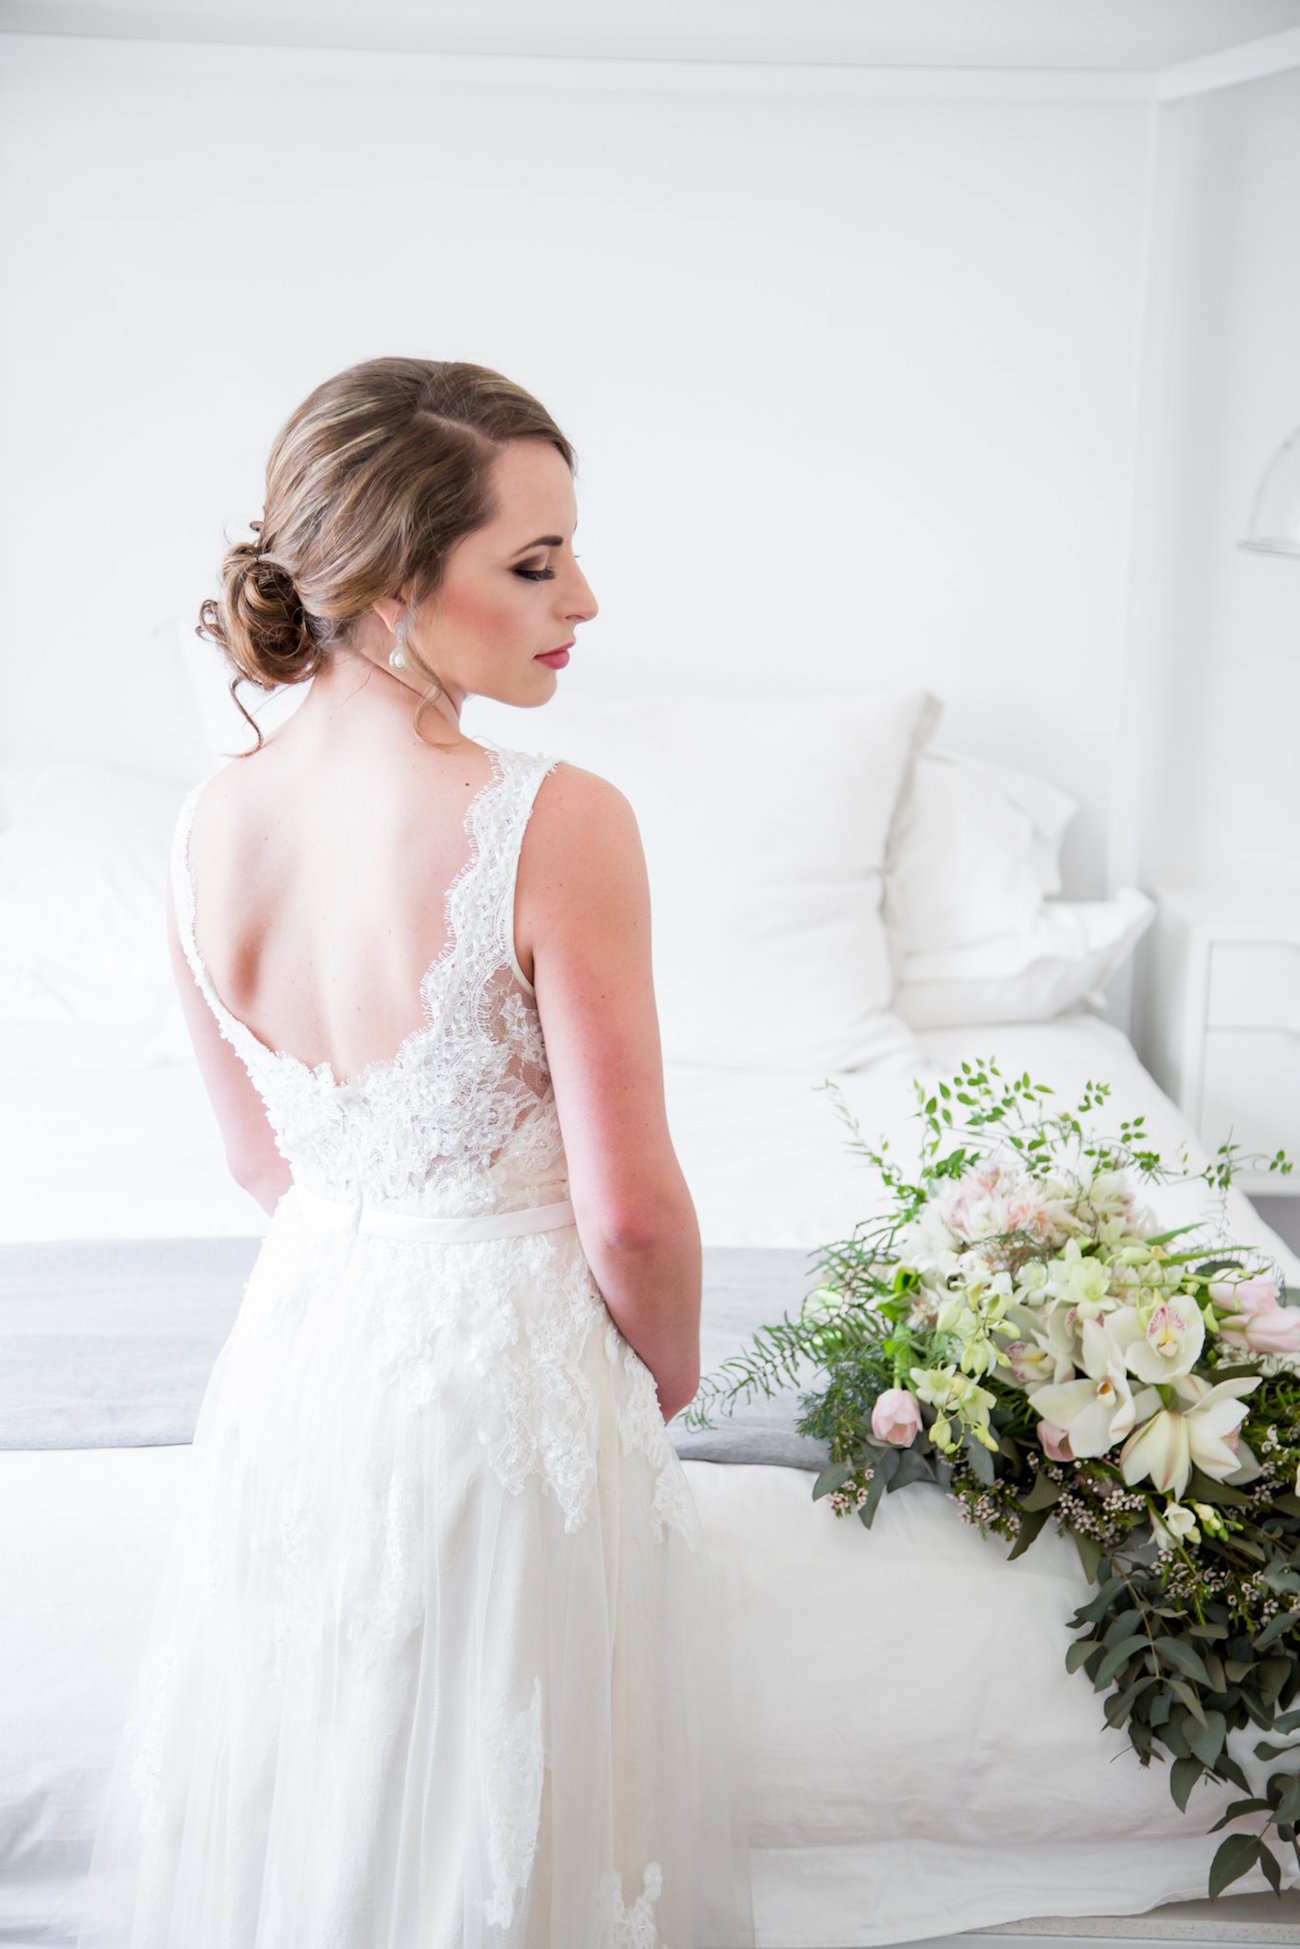 BHLDN Lace Wedding Dress | Image: JCclick